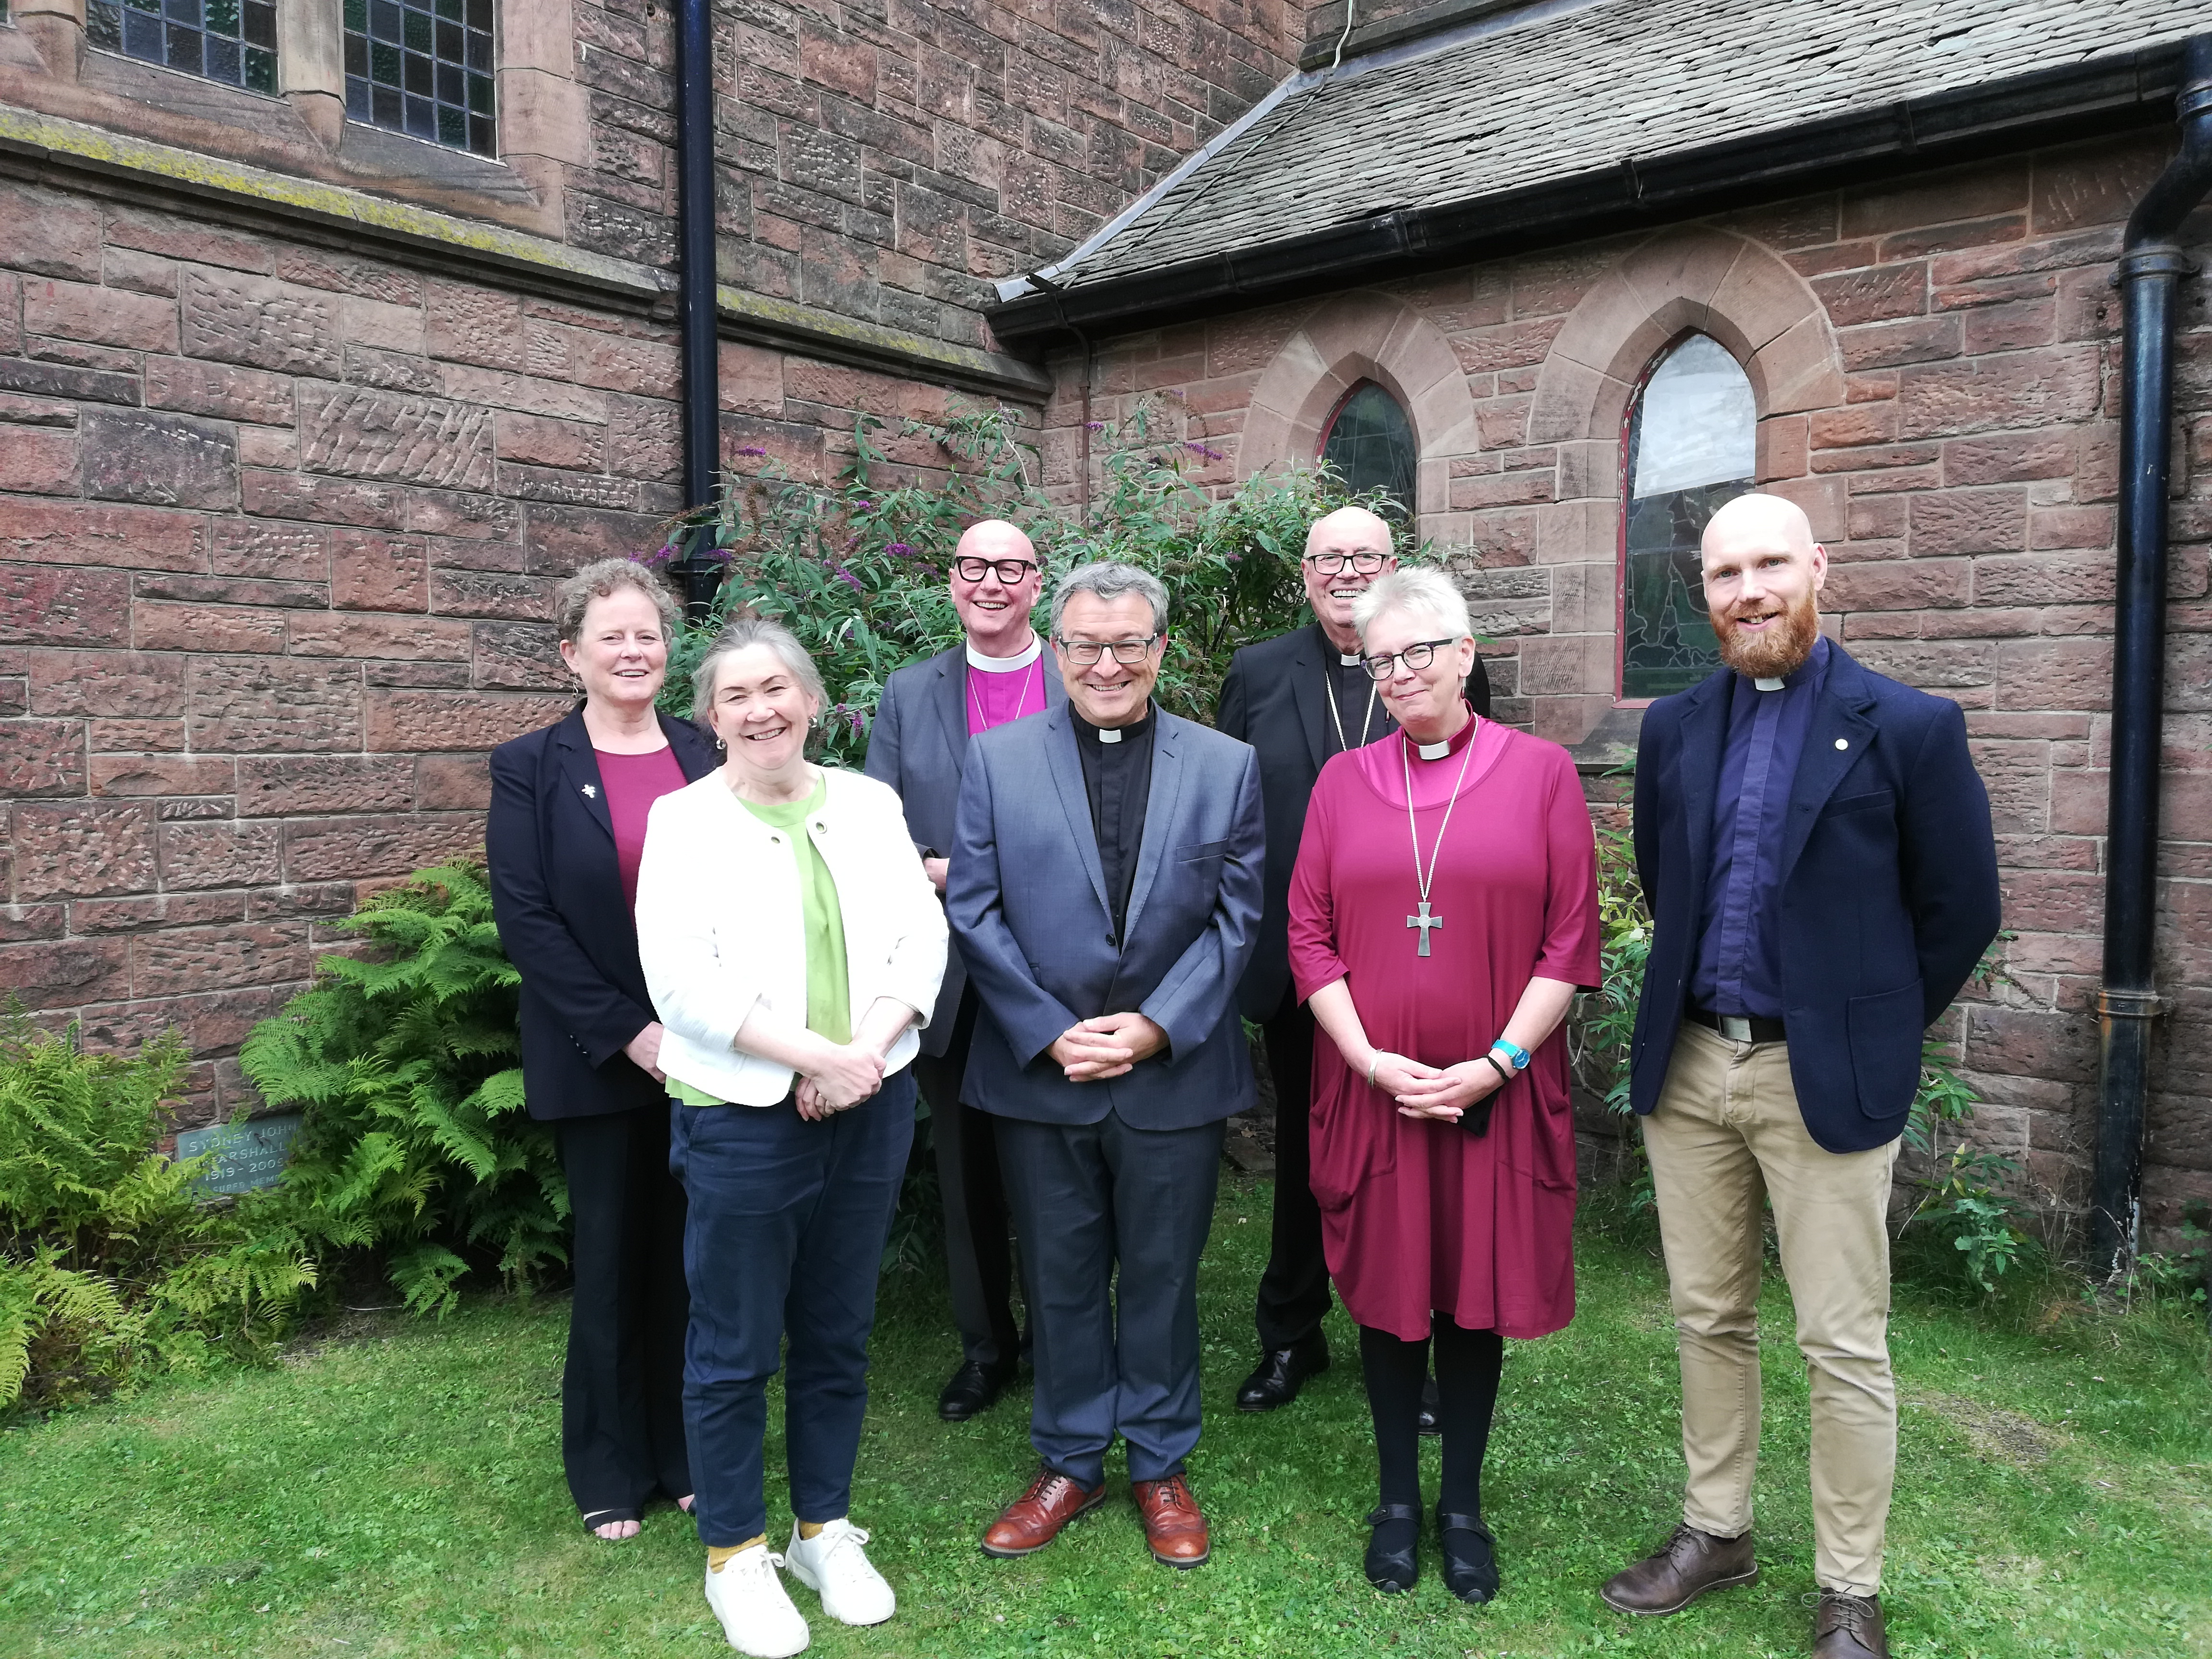 Special service held to induct new moderator